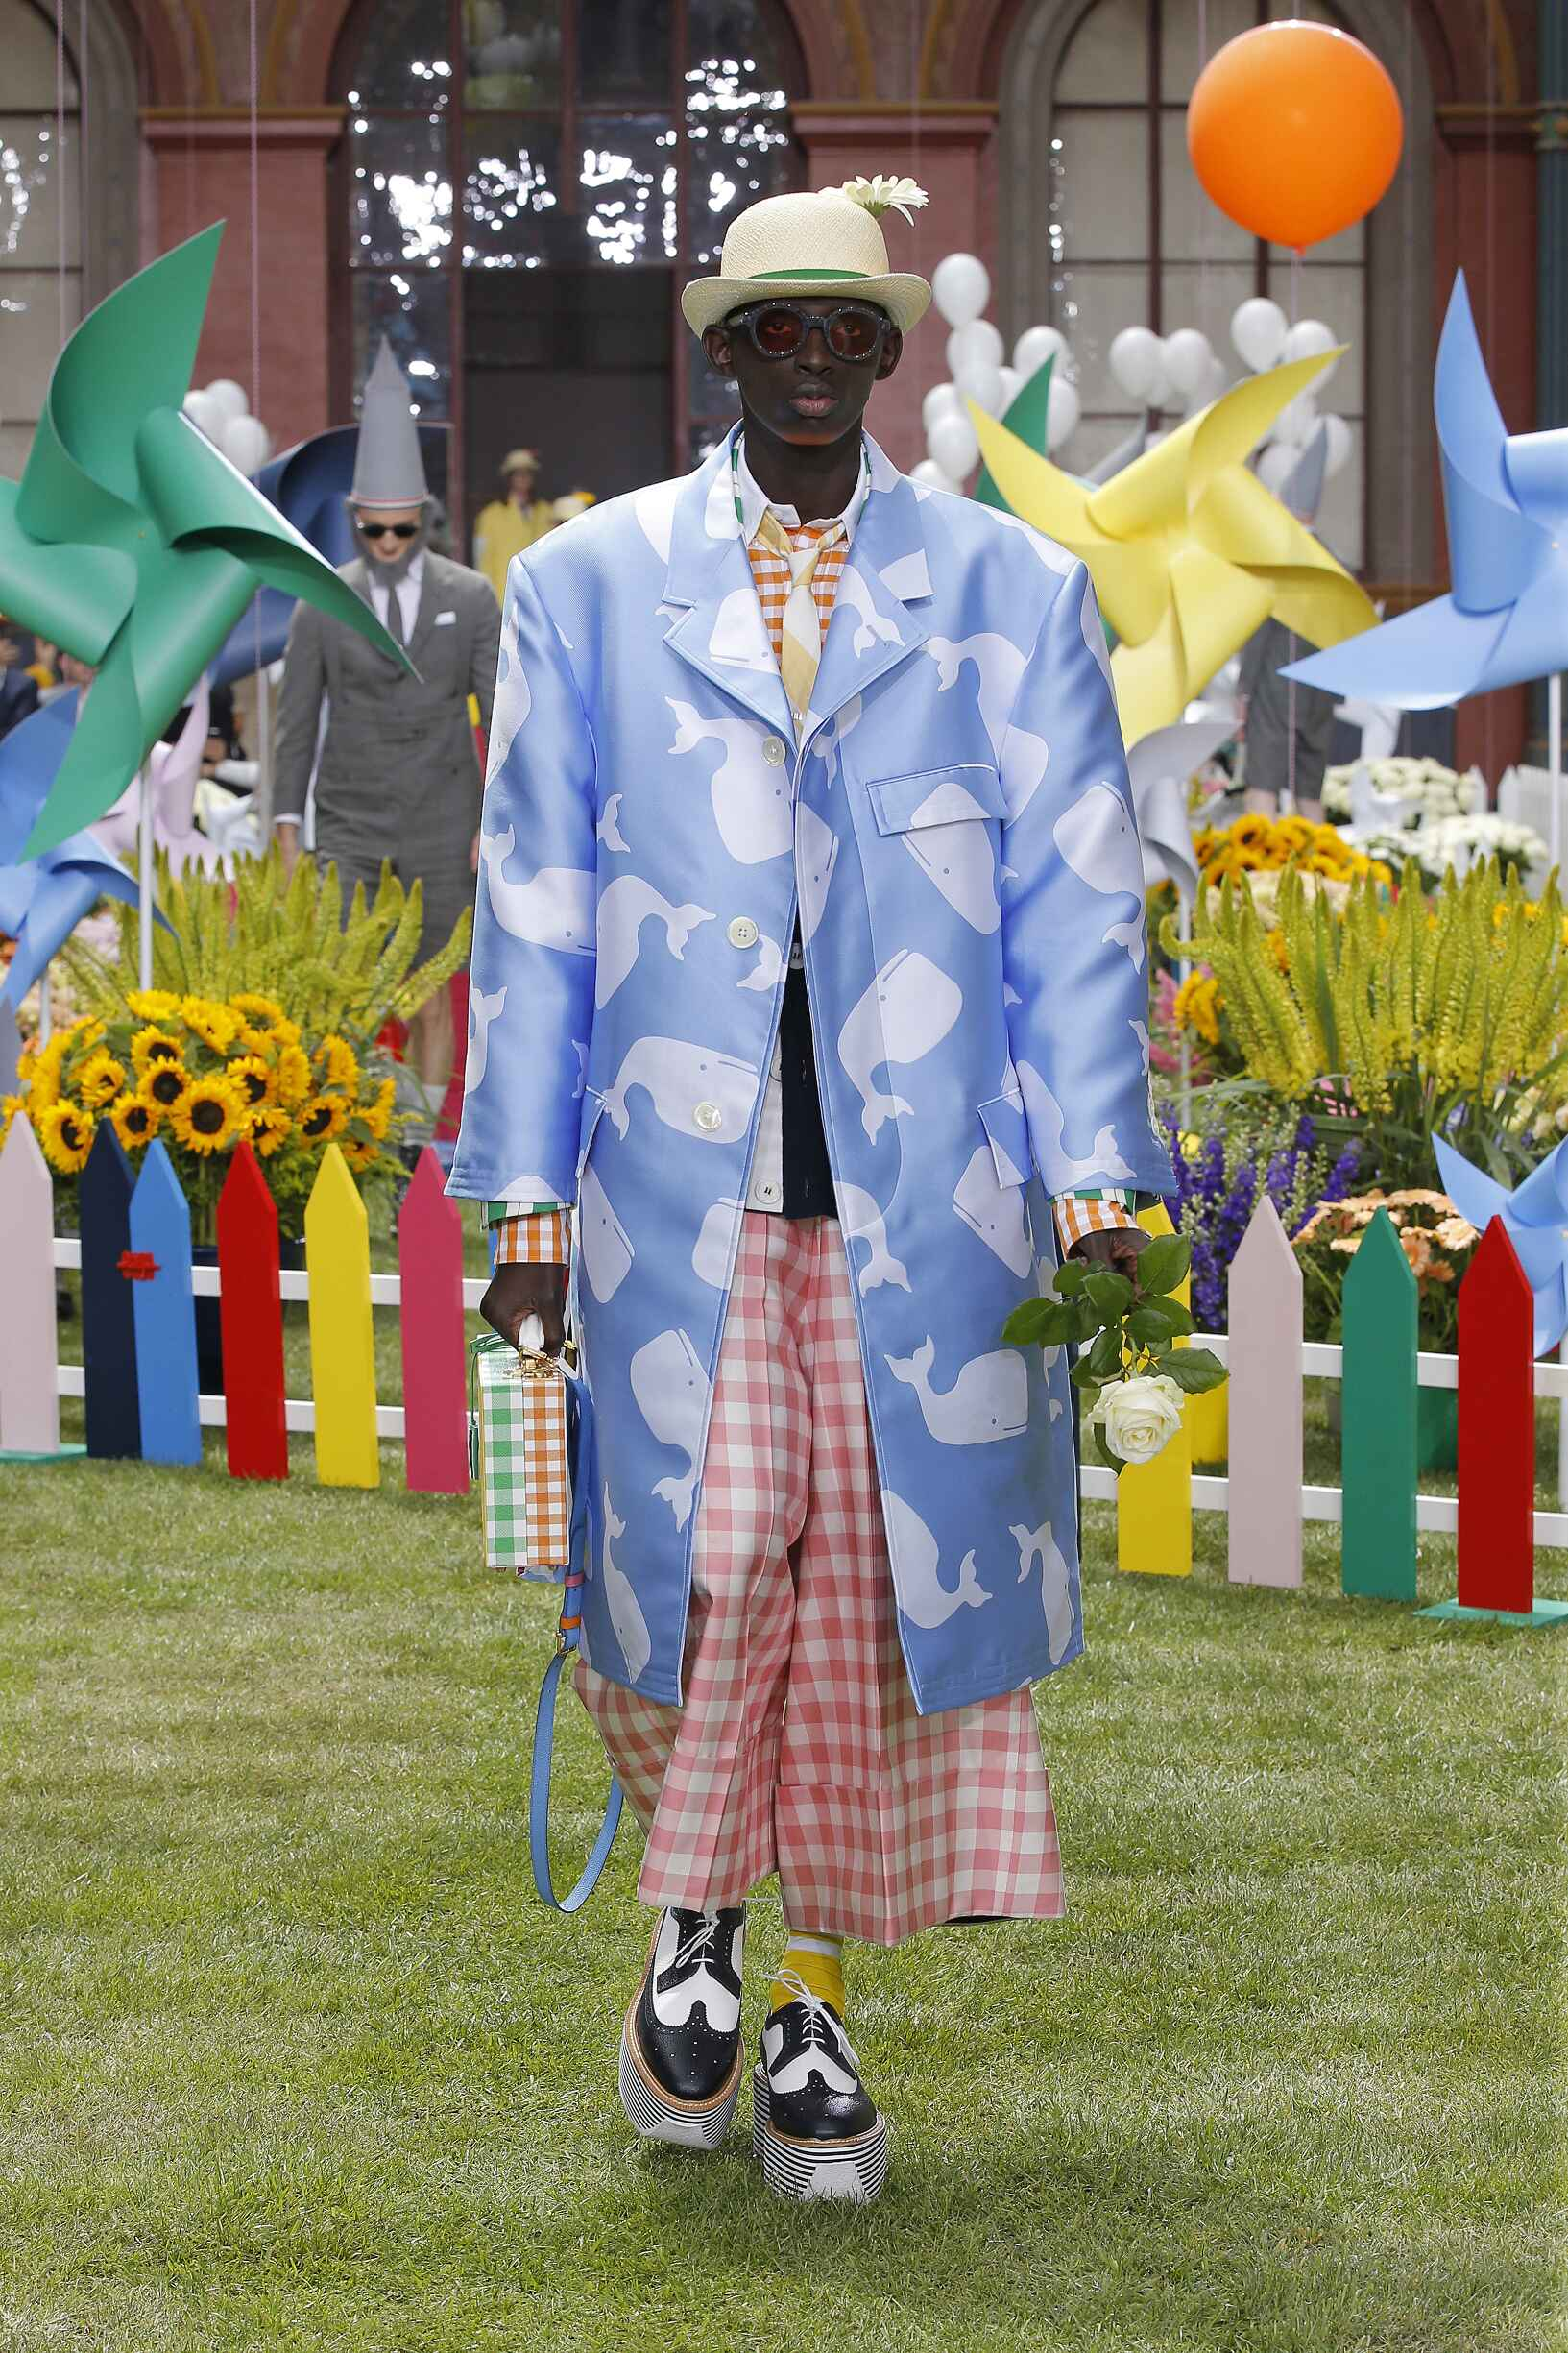 SS 2019 Thom Browne Fashion Show